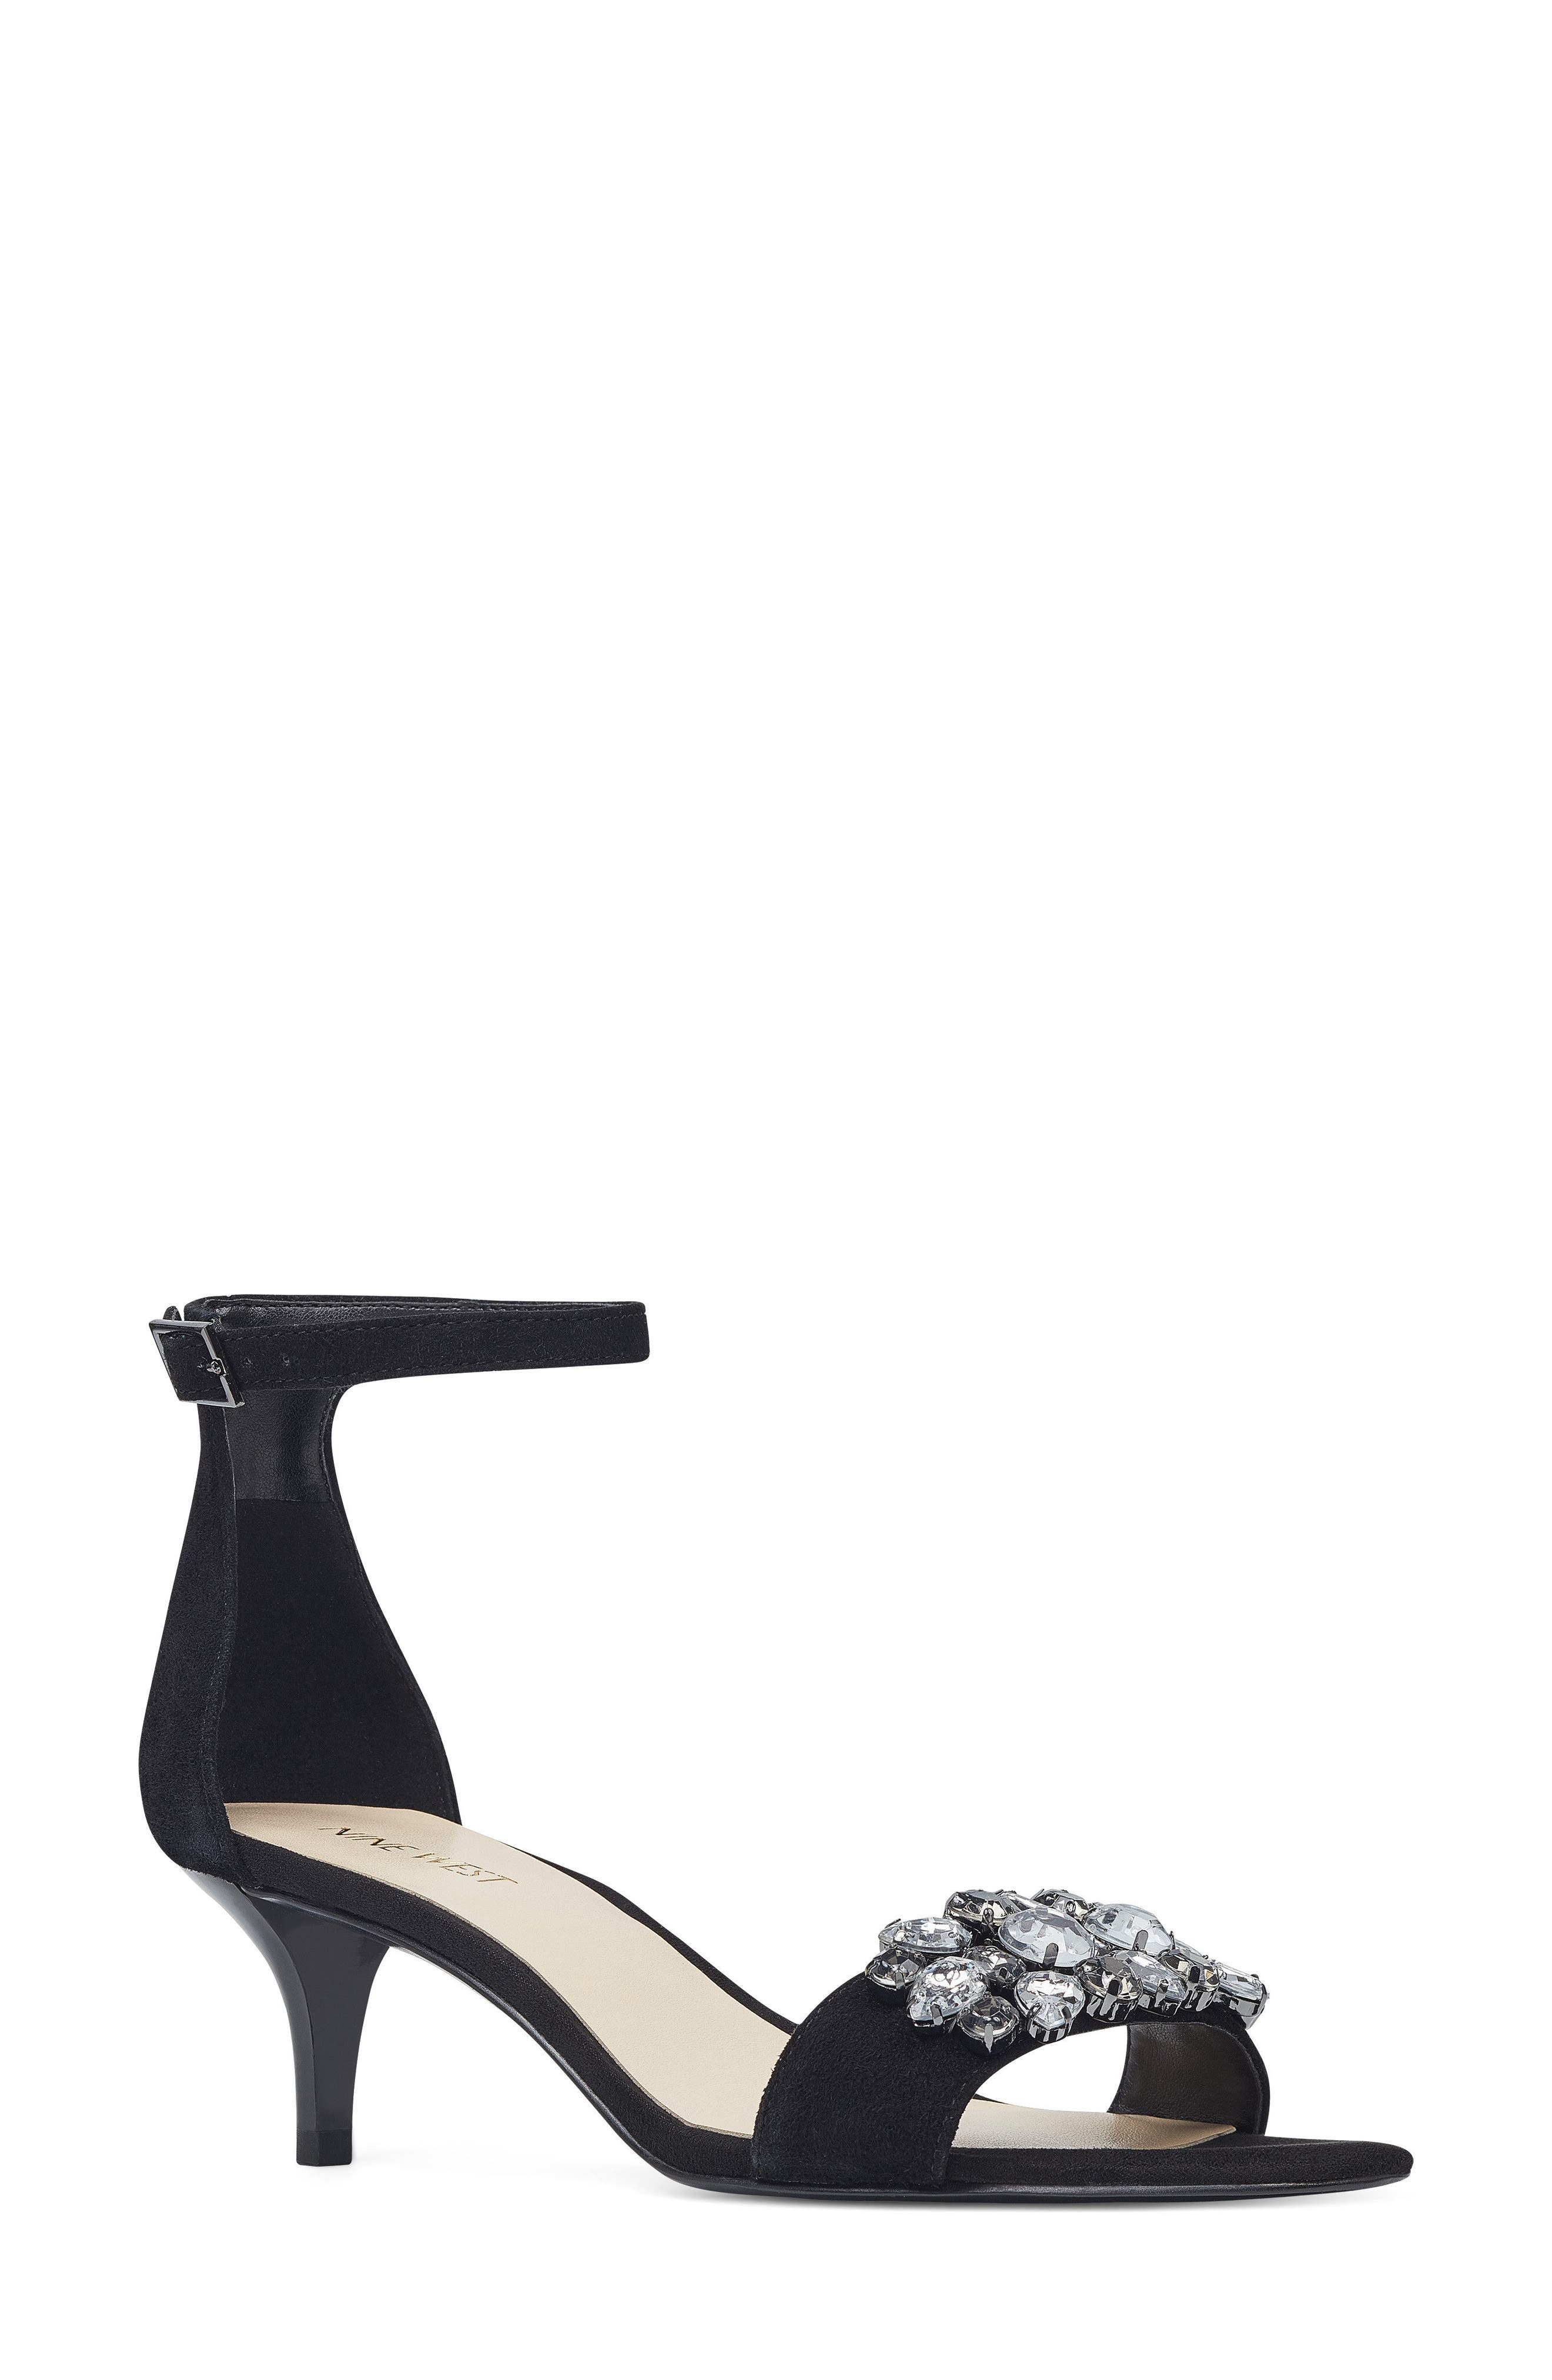 Lecia Embellished Ankle Strap Sandal,                         Main,                         color,